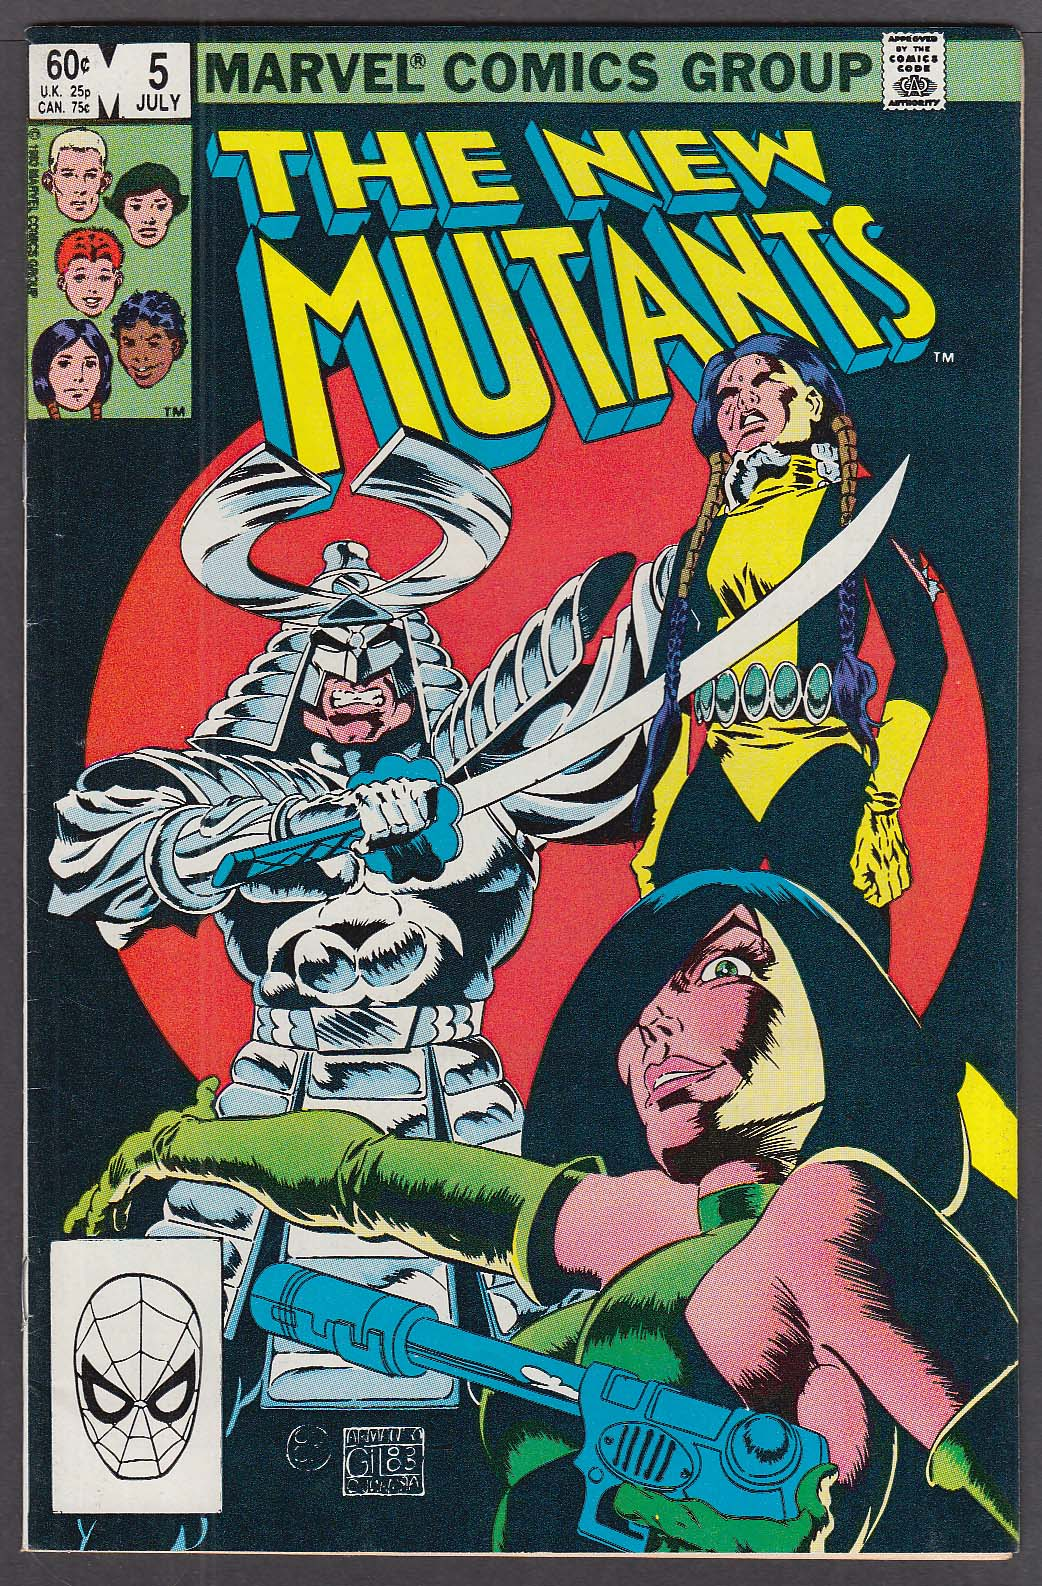 Image for The NEW MUTANTS #5 Marvel comic book 7 1983